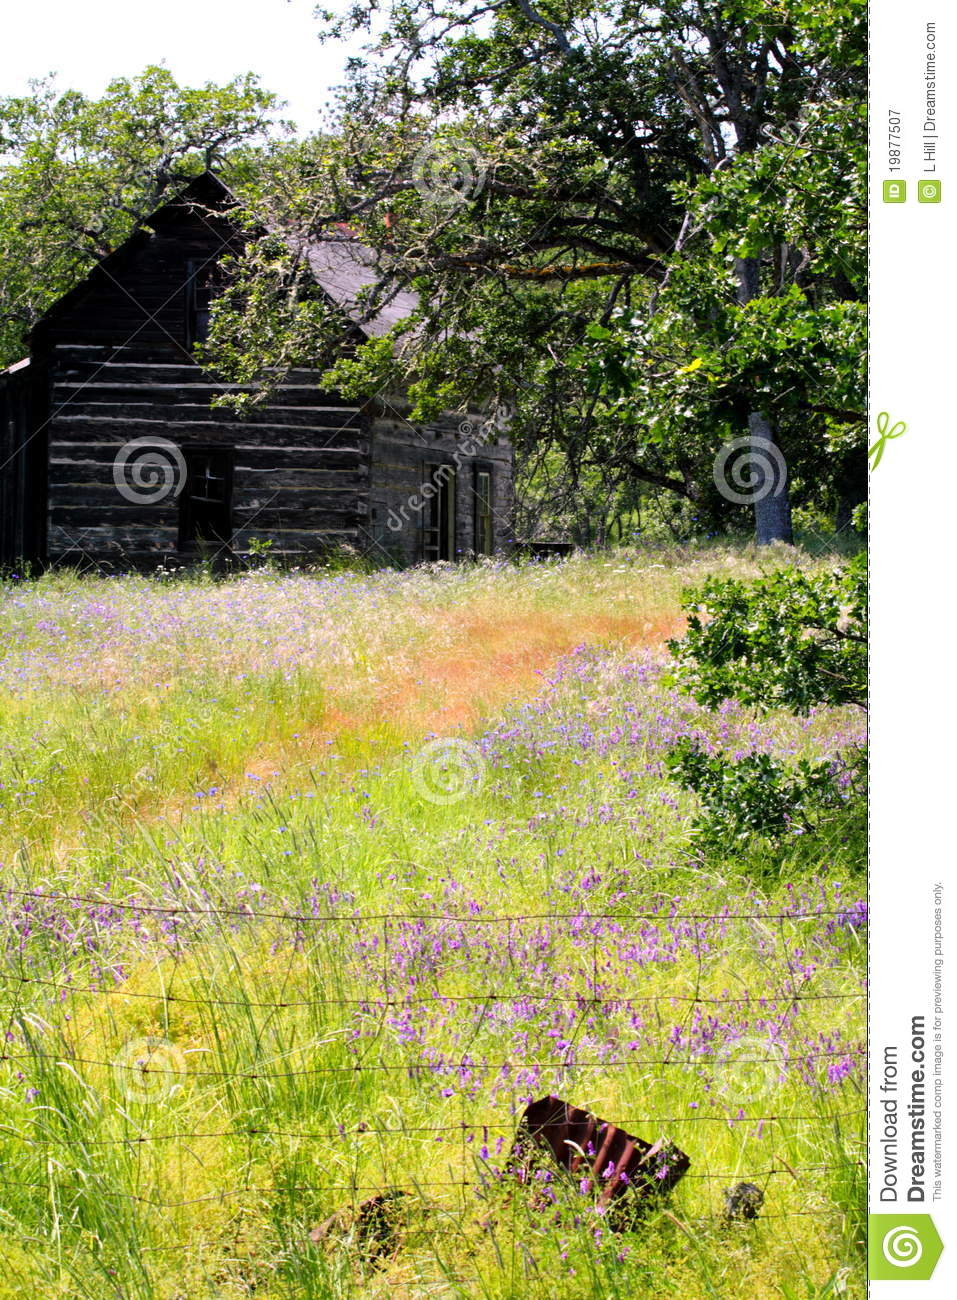 Abandoned Homestead Cabin in field of Wild Flowers